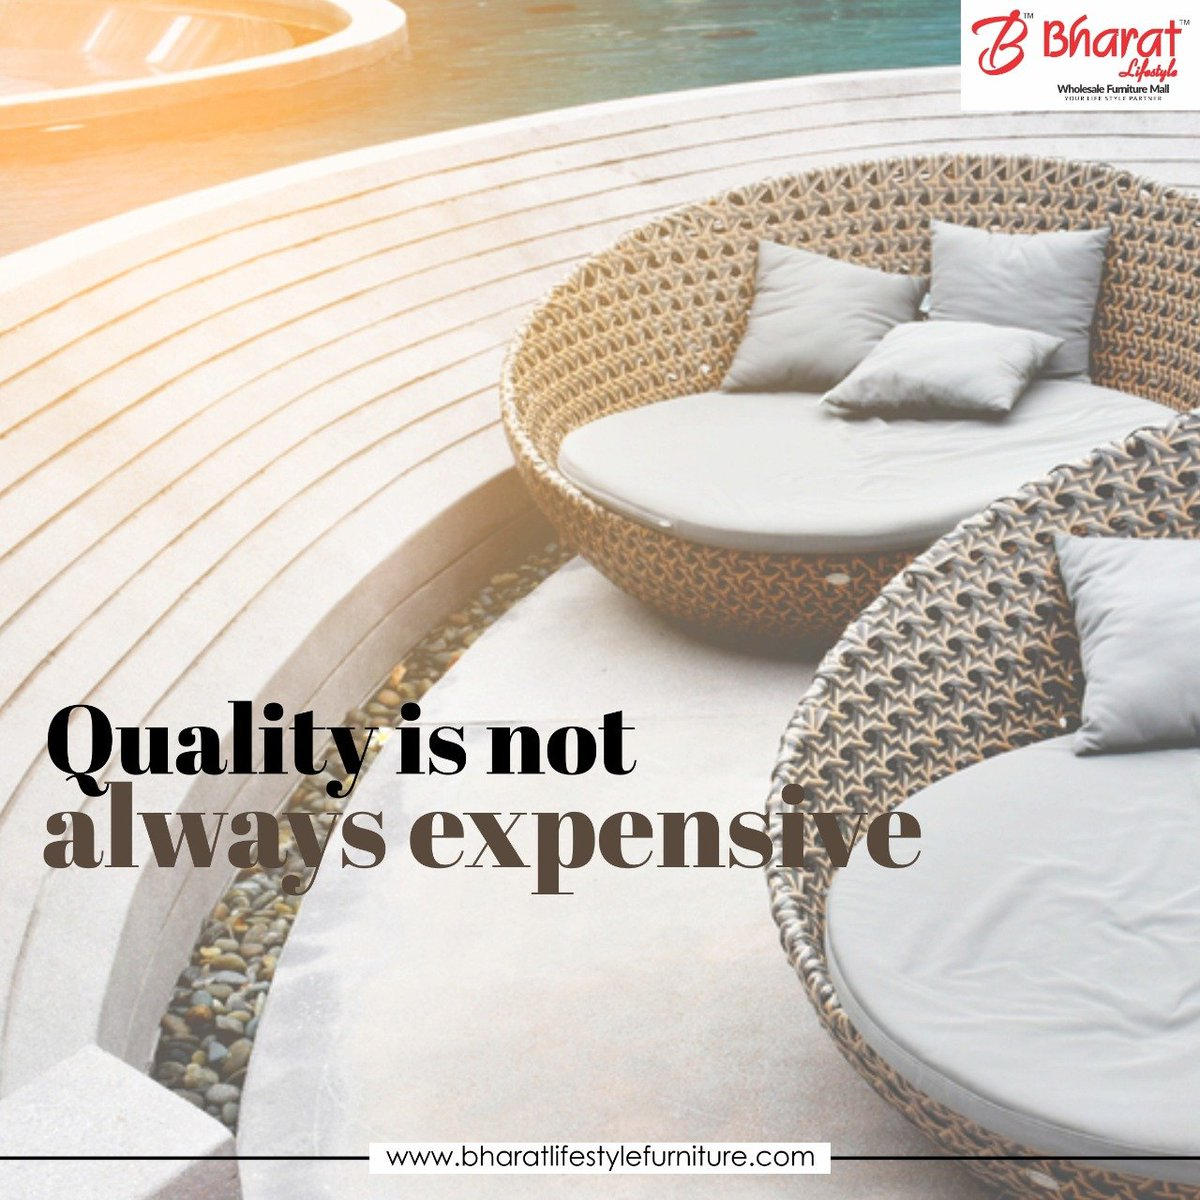 Quality should be expensive but quality is not always expensive with bharat lifestyle. https://www.bharatlifestylefurniture.com/   #chair #furniture #design #designerchair #sofadesign #livingroomdesign #homedecor #furnitureonline #furniturestore #stylishchairs #bls #bharatlifestyleindorepic.twitter.com/GGUOq4XKAn